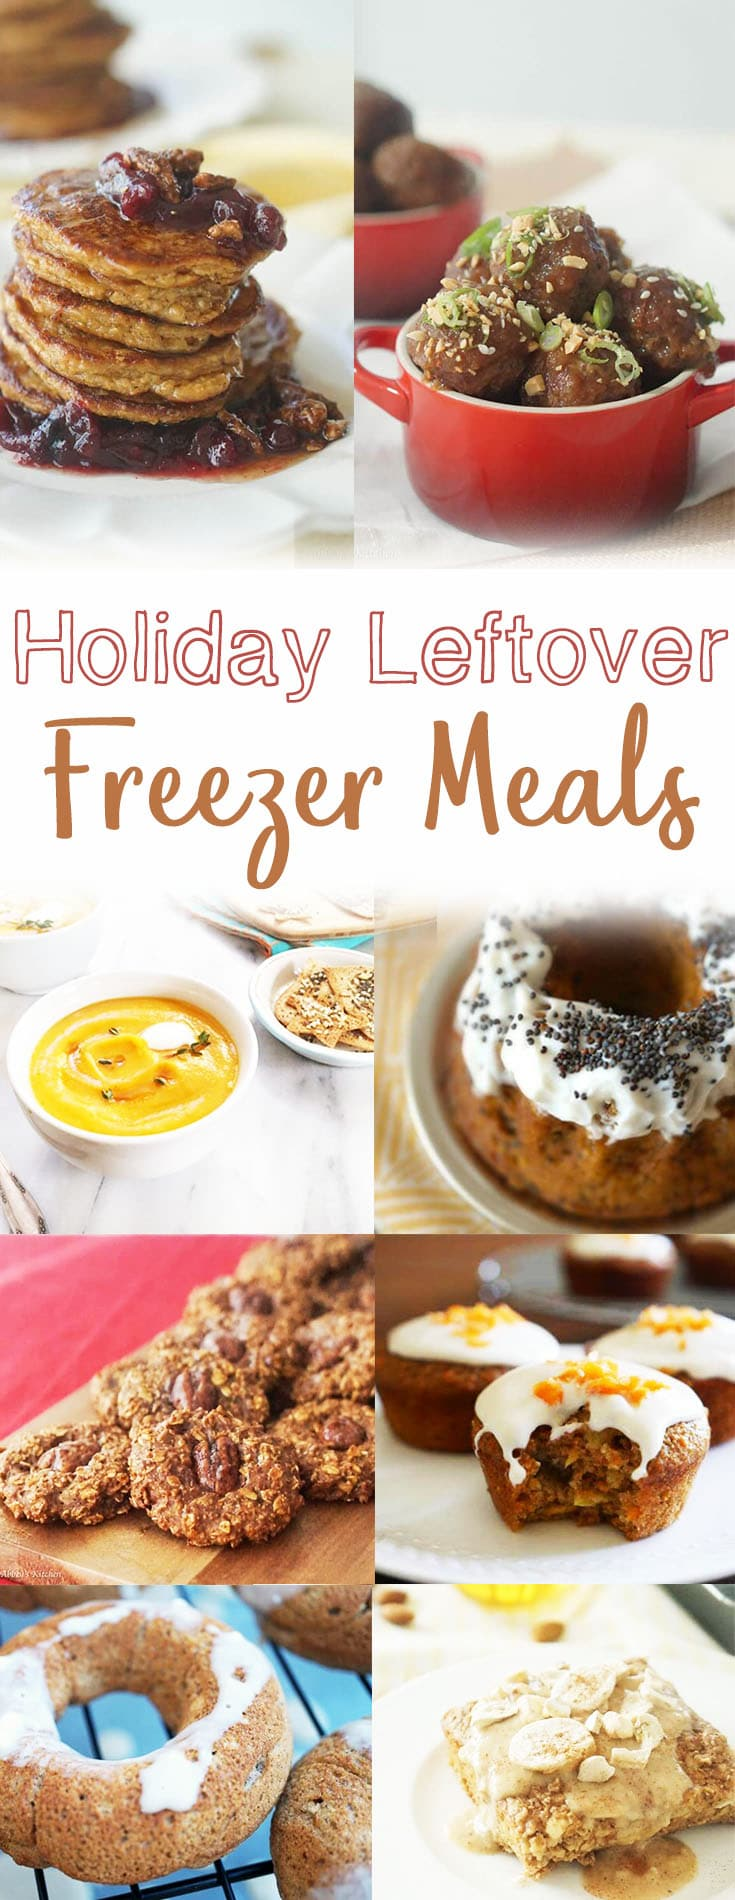 The holidays typically results in a lot of yummy leftovers which means planning make ahead freezer meals meals to pack away in food storage containers is never a bad idea.